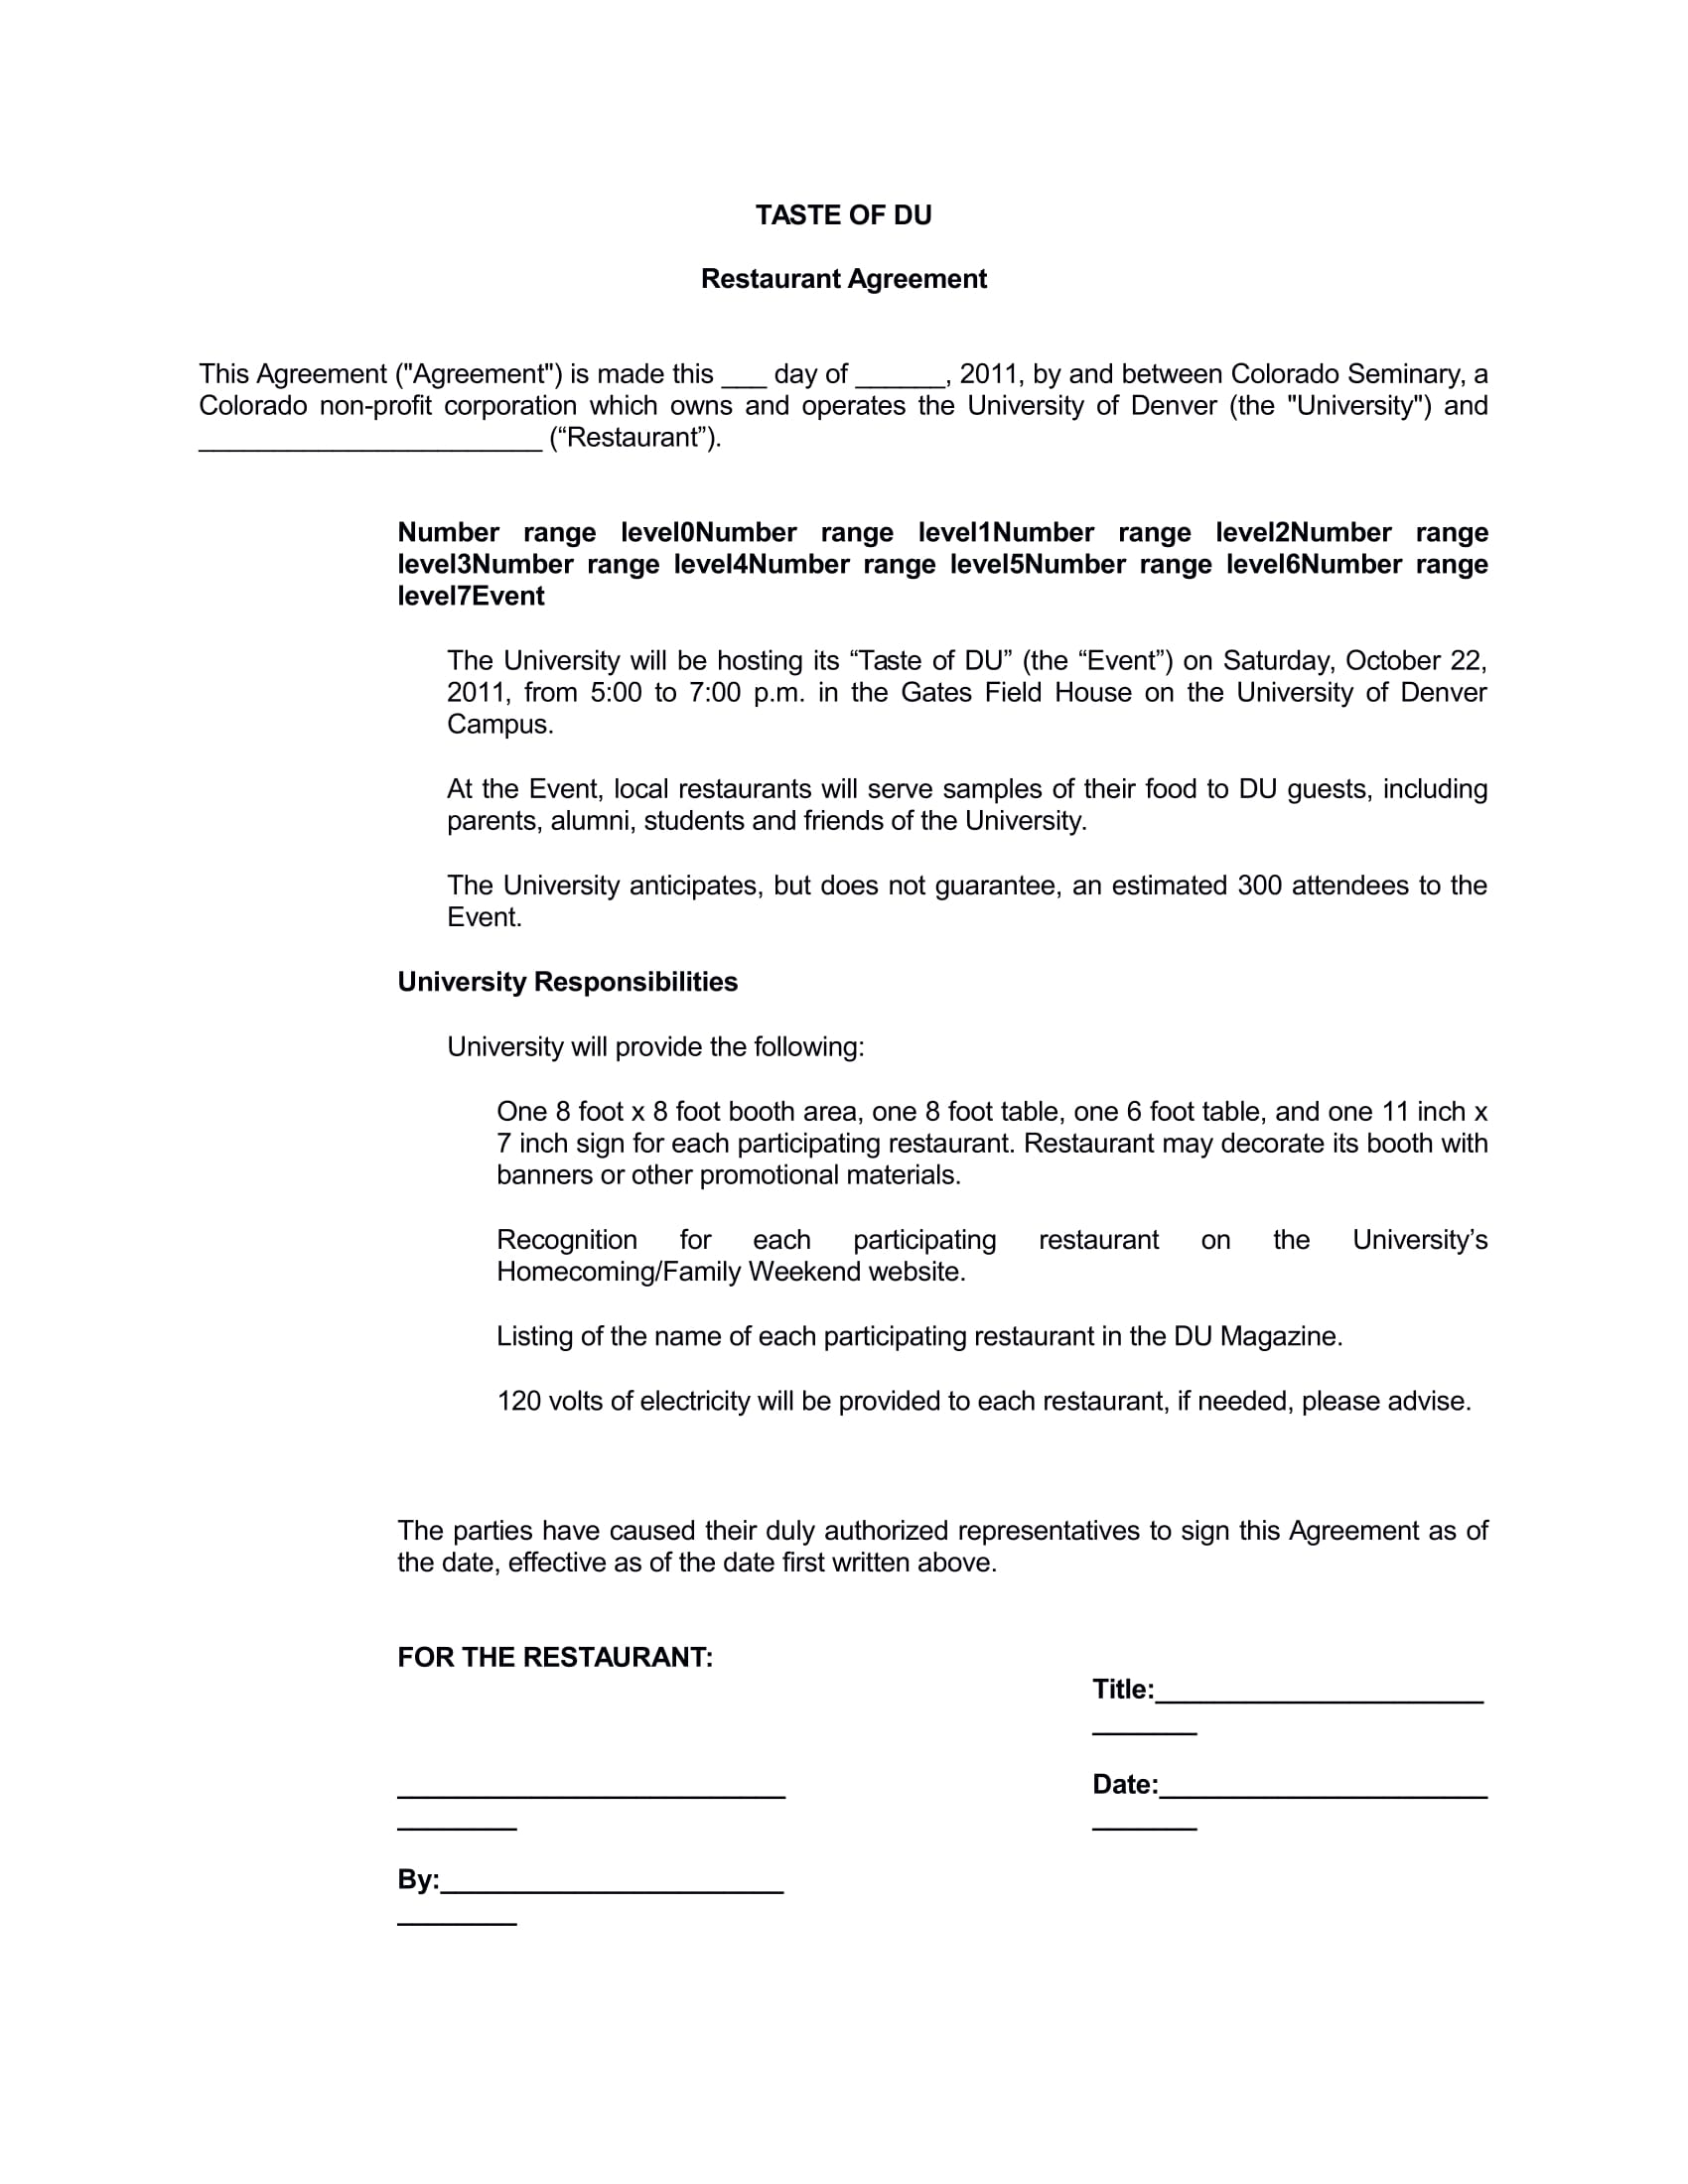 consulting agreement forms - domosens.tk